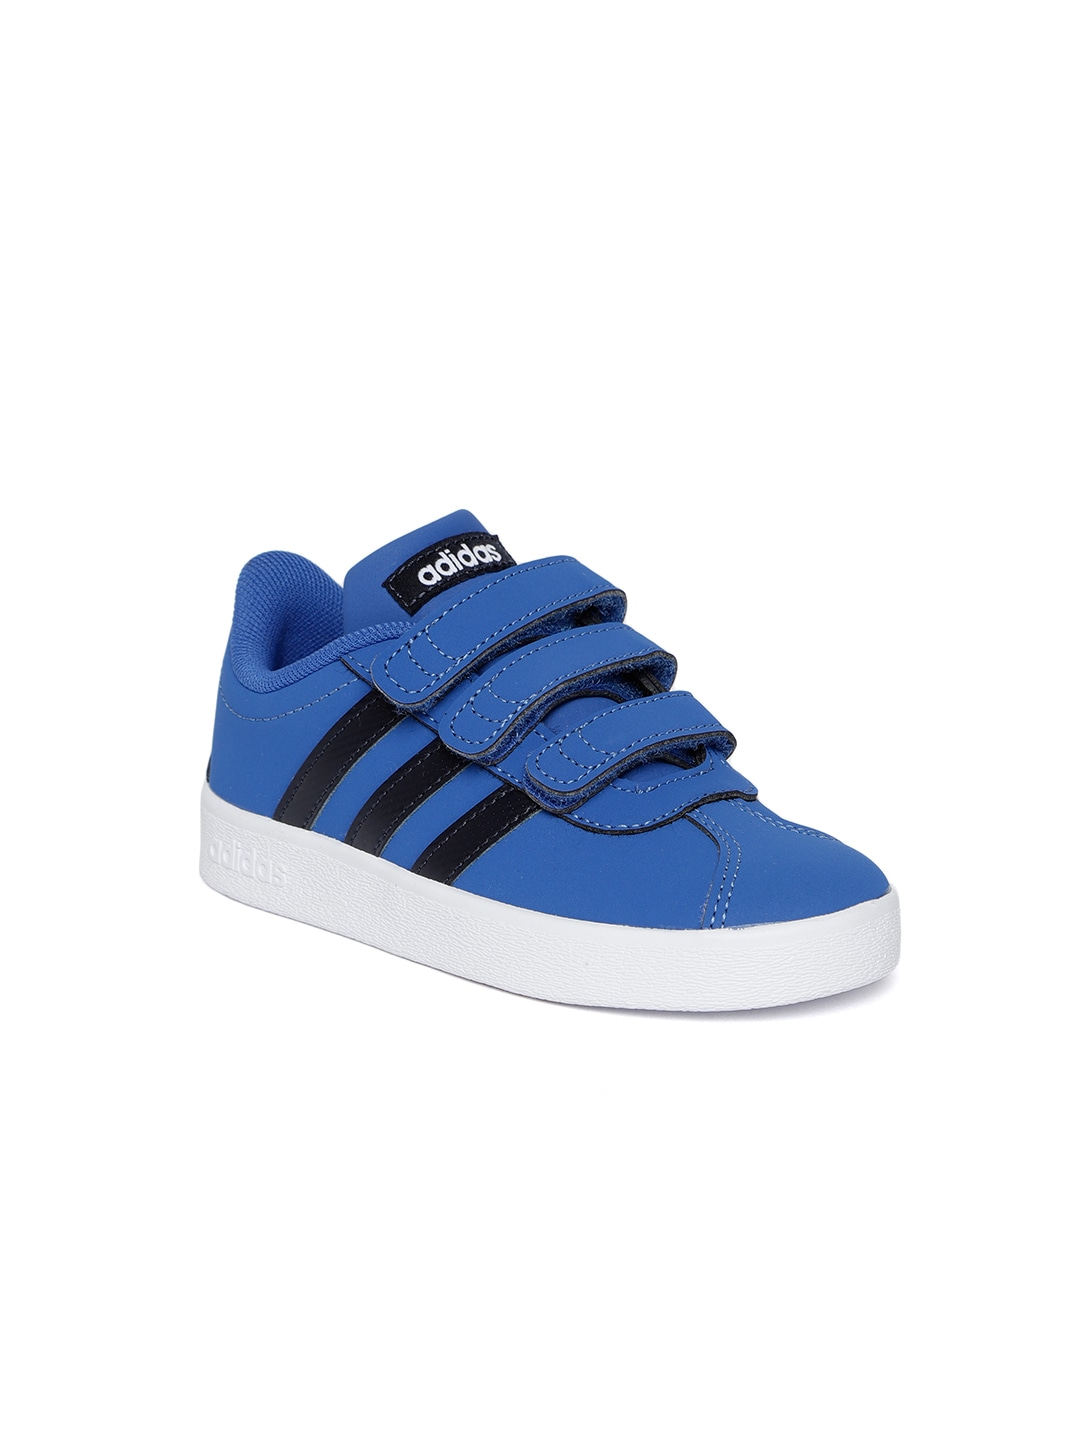 5a484afb9 Adidas Footwear - Buy Adidas Footwear Online in India